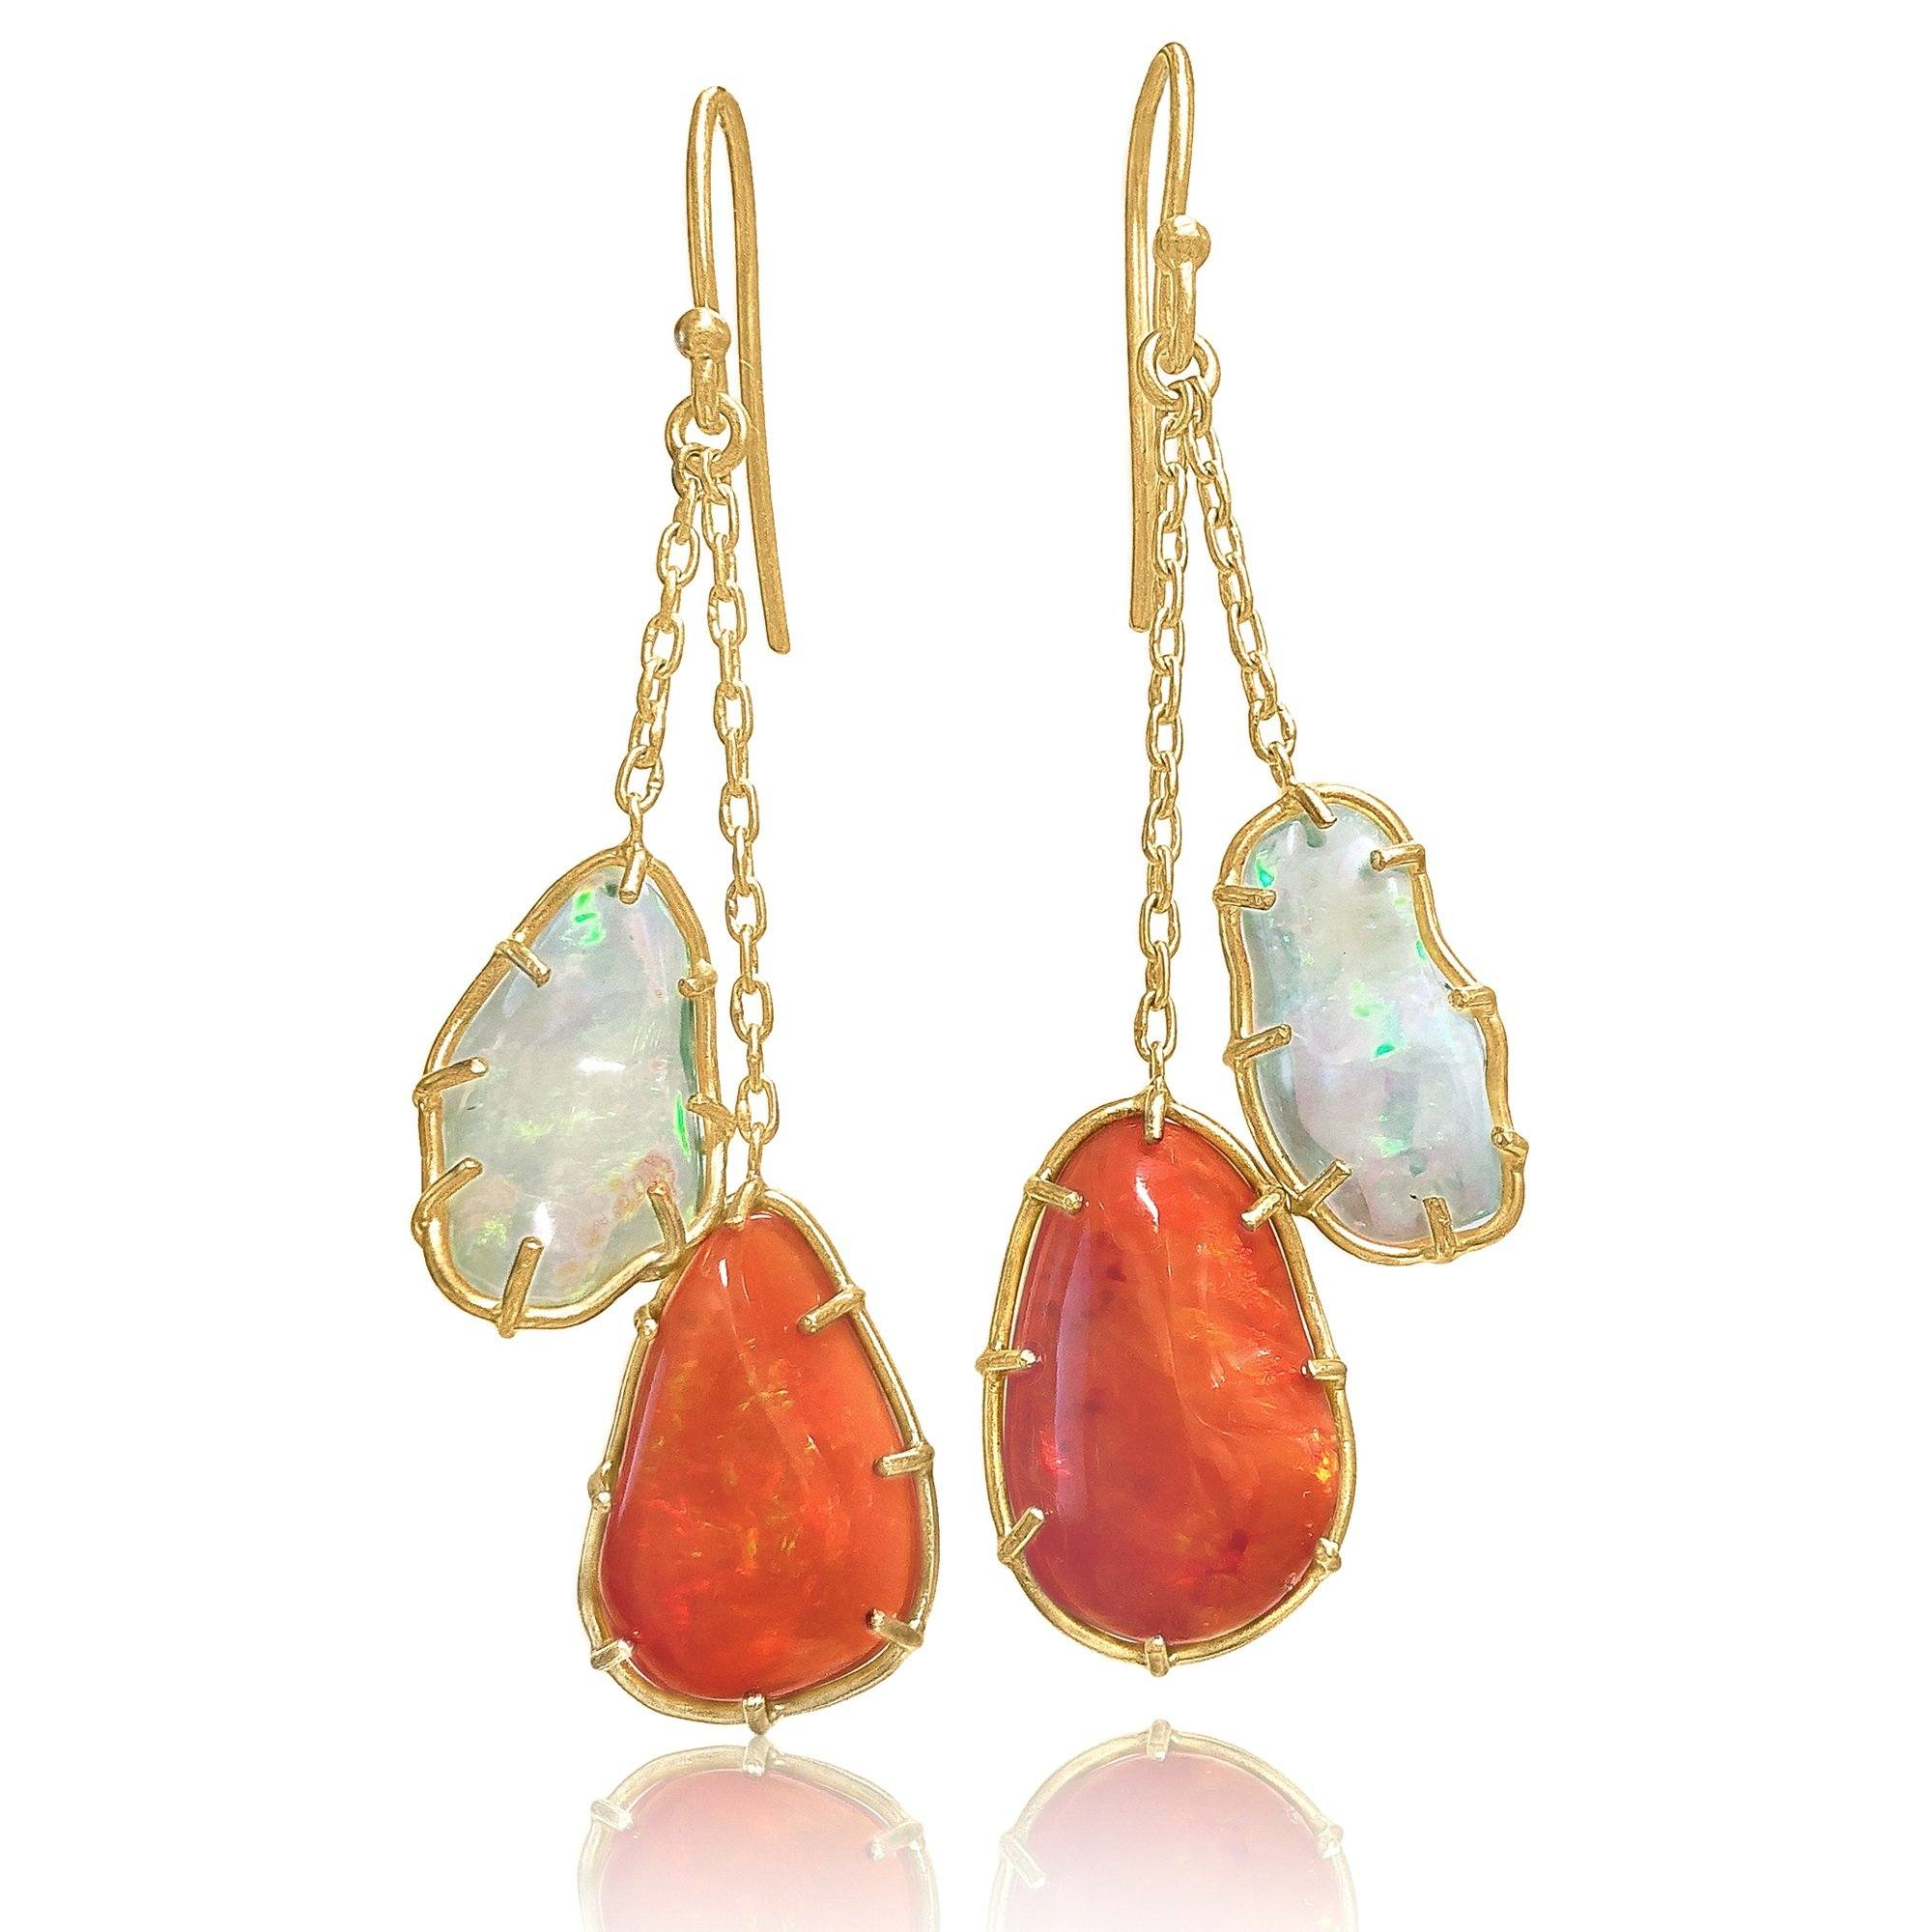 8b91852f8 ... Kothari Freeform Multicolored Mexican Opal One of a Kind Chain Drop  Earrings - Szor Collections ...